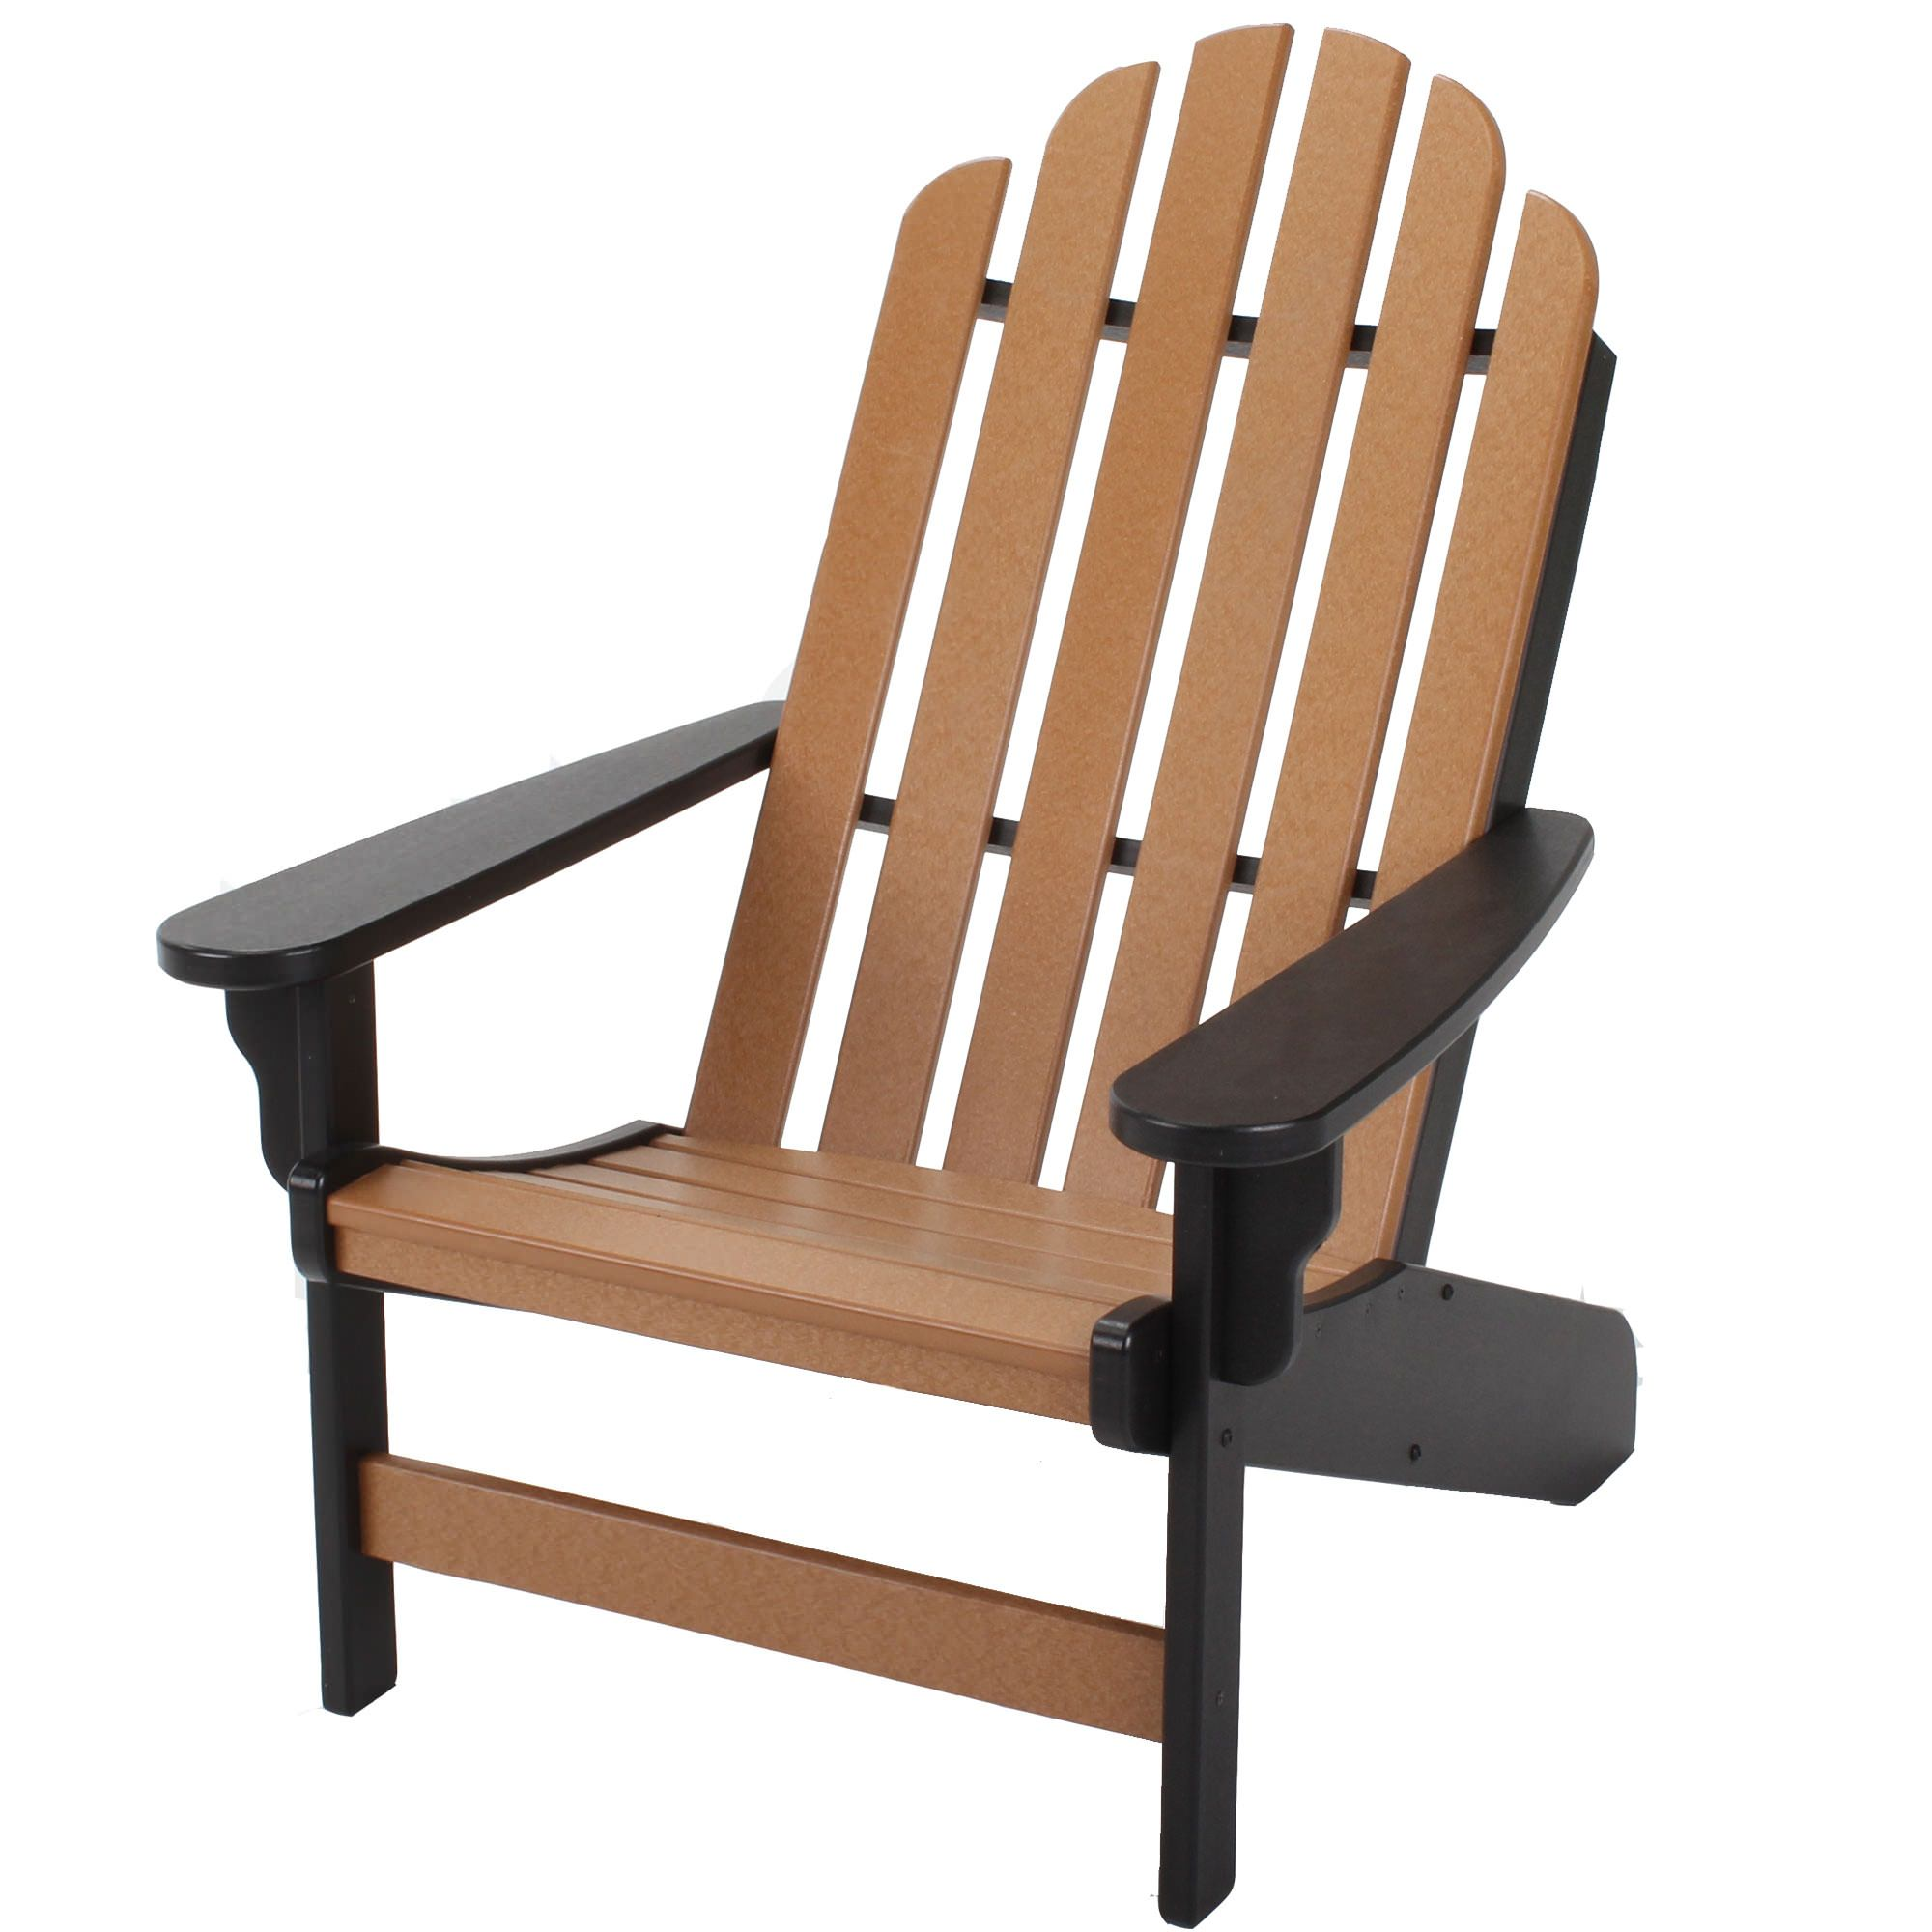 Island Chair Durawood Essentials Adirondack Chair Pawleys Island Hammocks